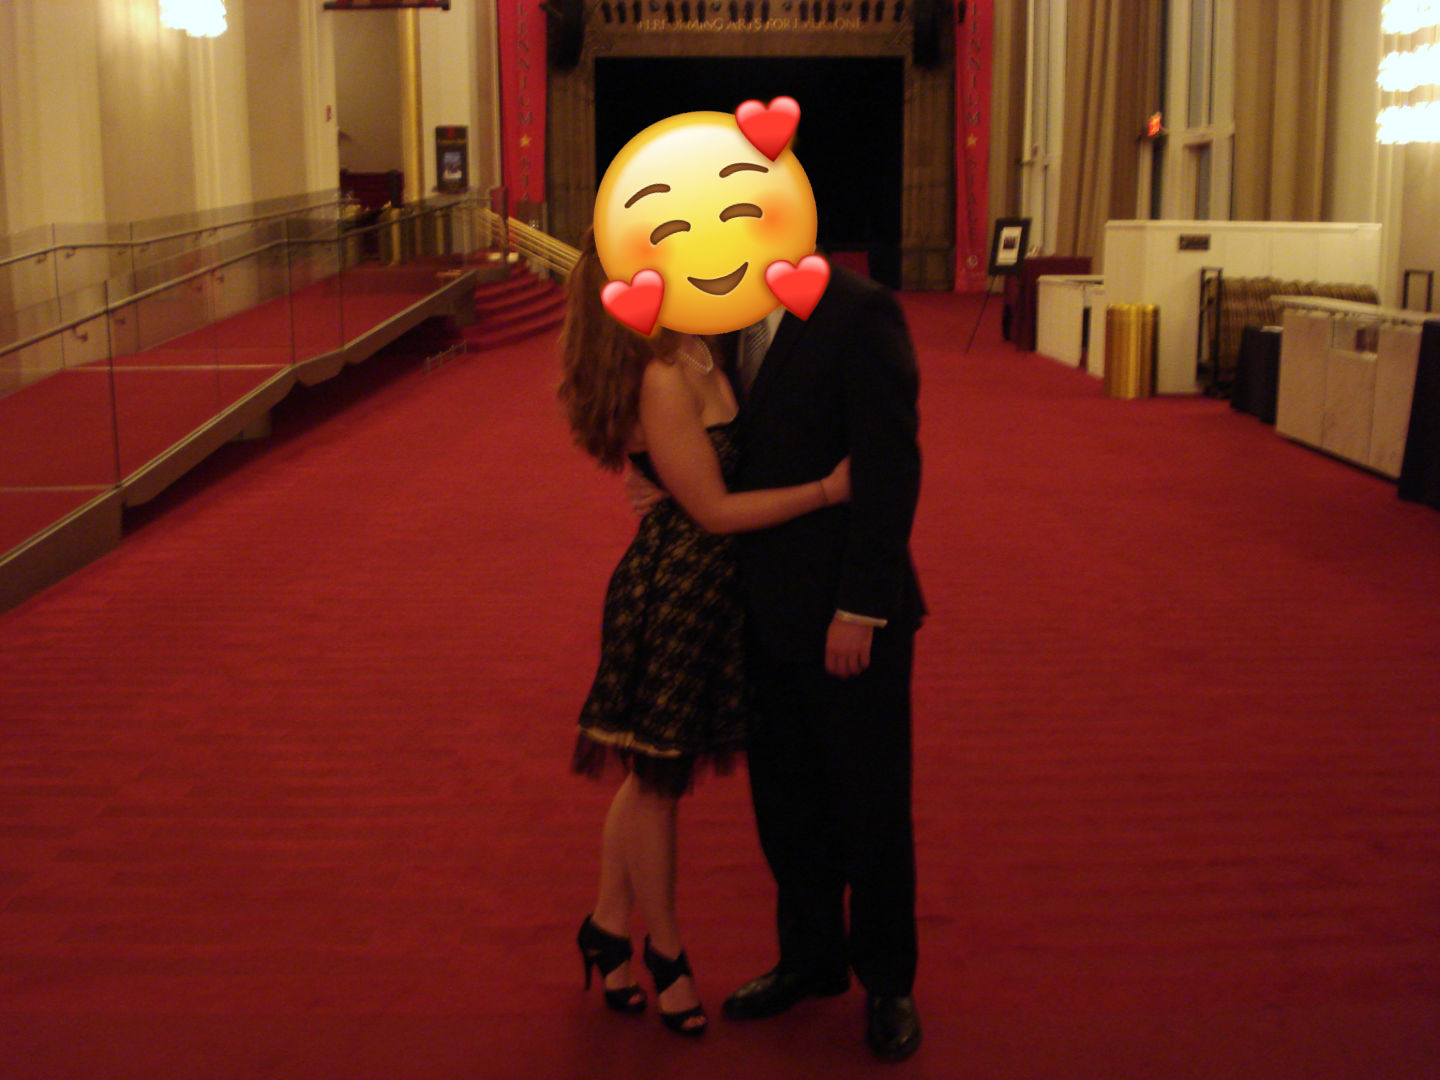 The occasional special night out for a date with someone special at the Kennedy Center wasn't regrettable!